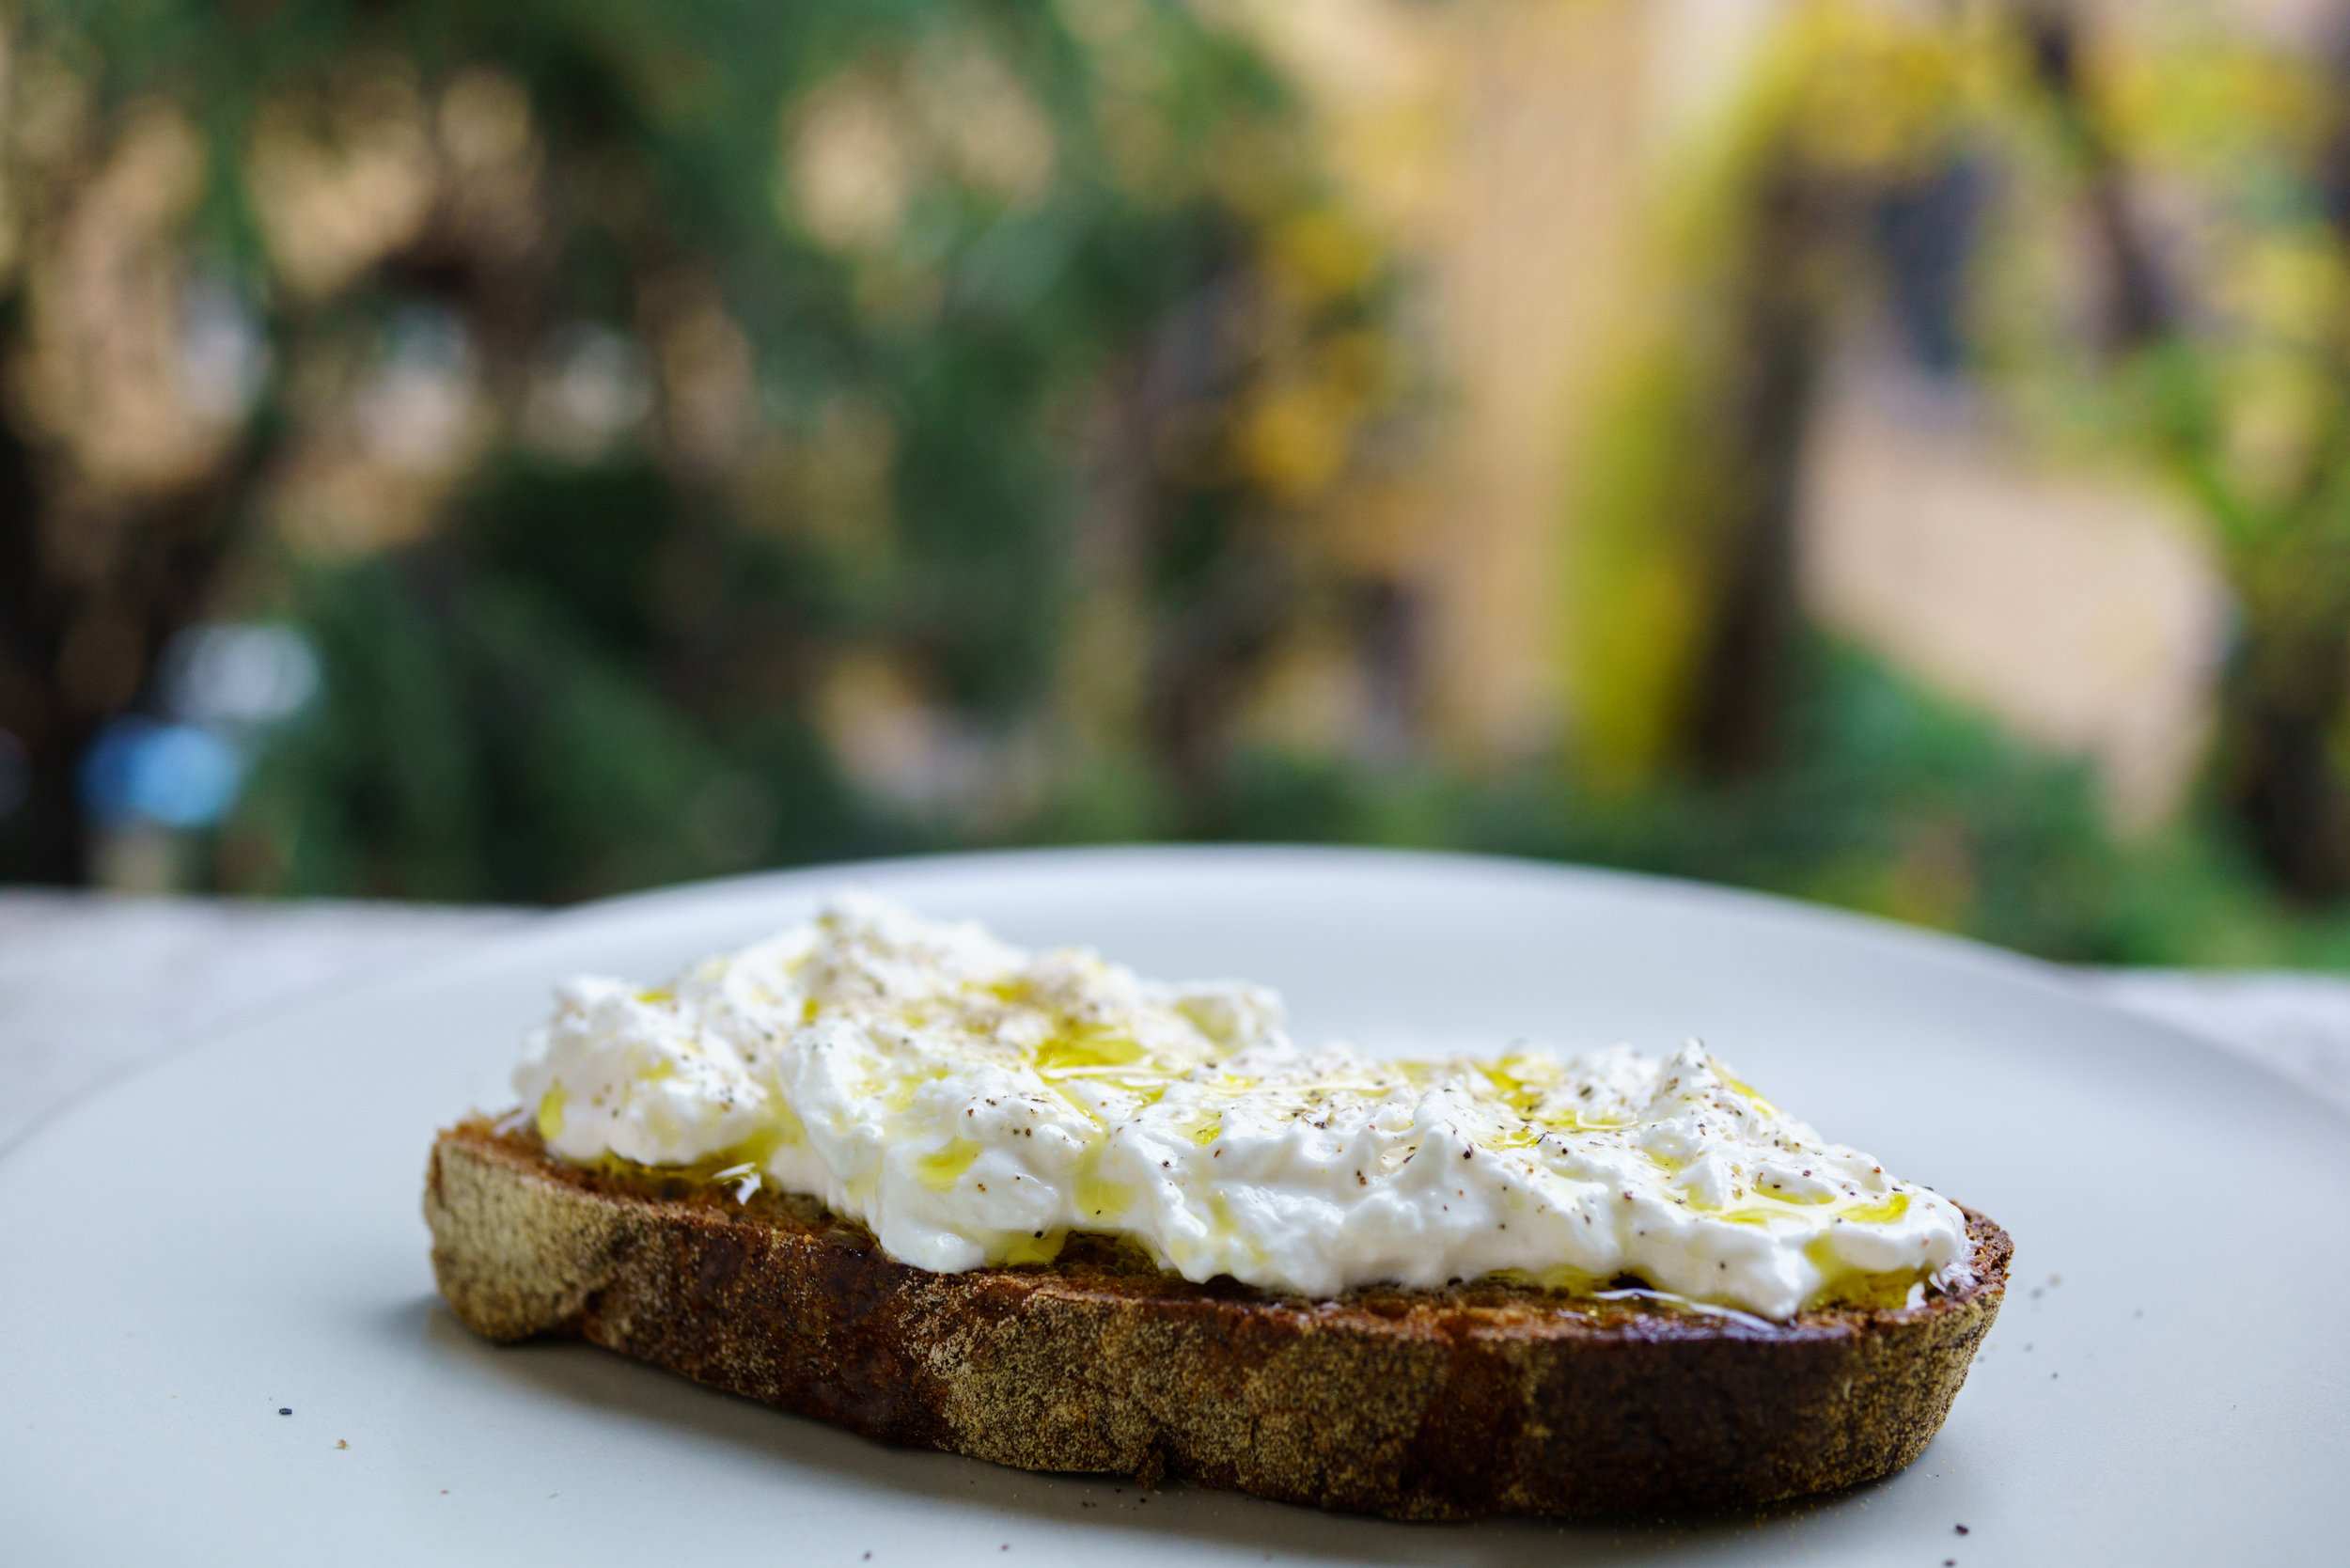 Sourdough topped with Stracciatella, drizzled with EVOO and finished with fresh cracked pepper